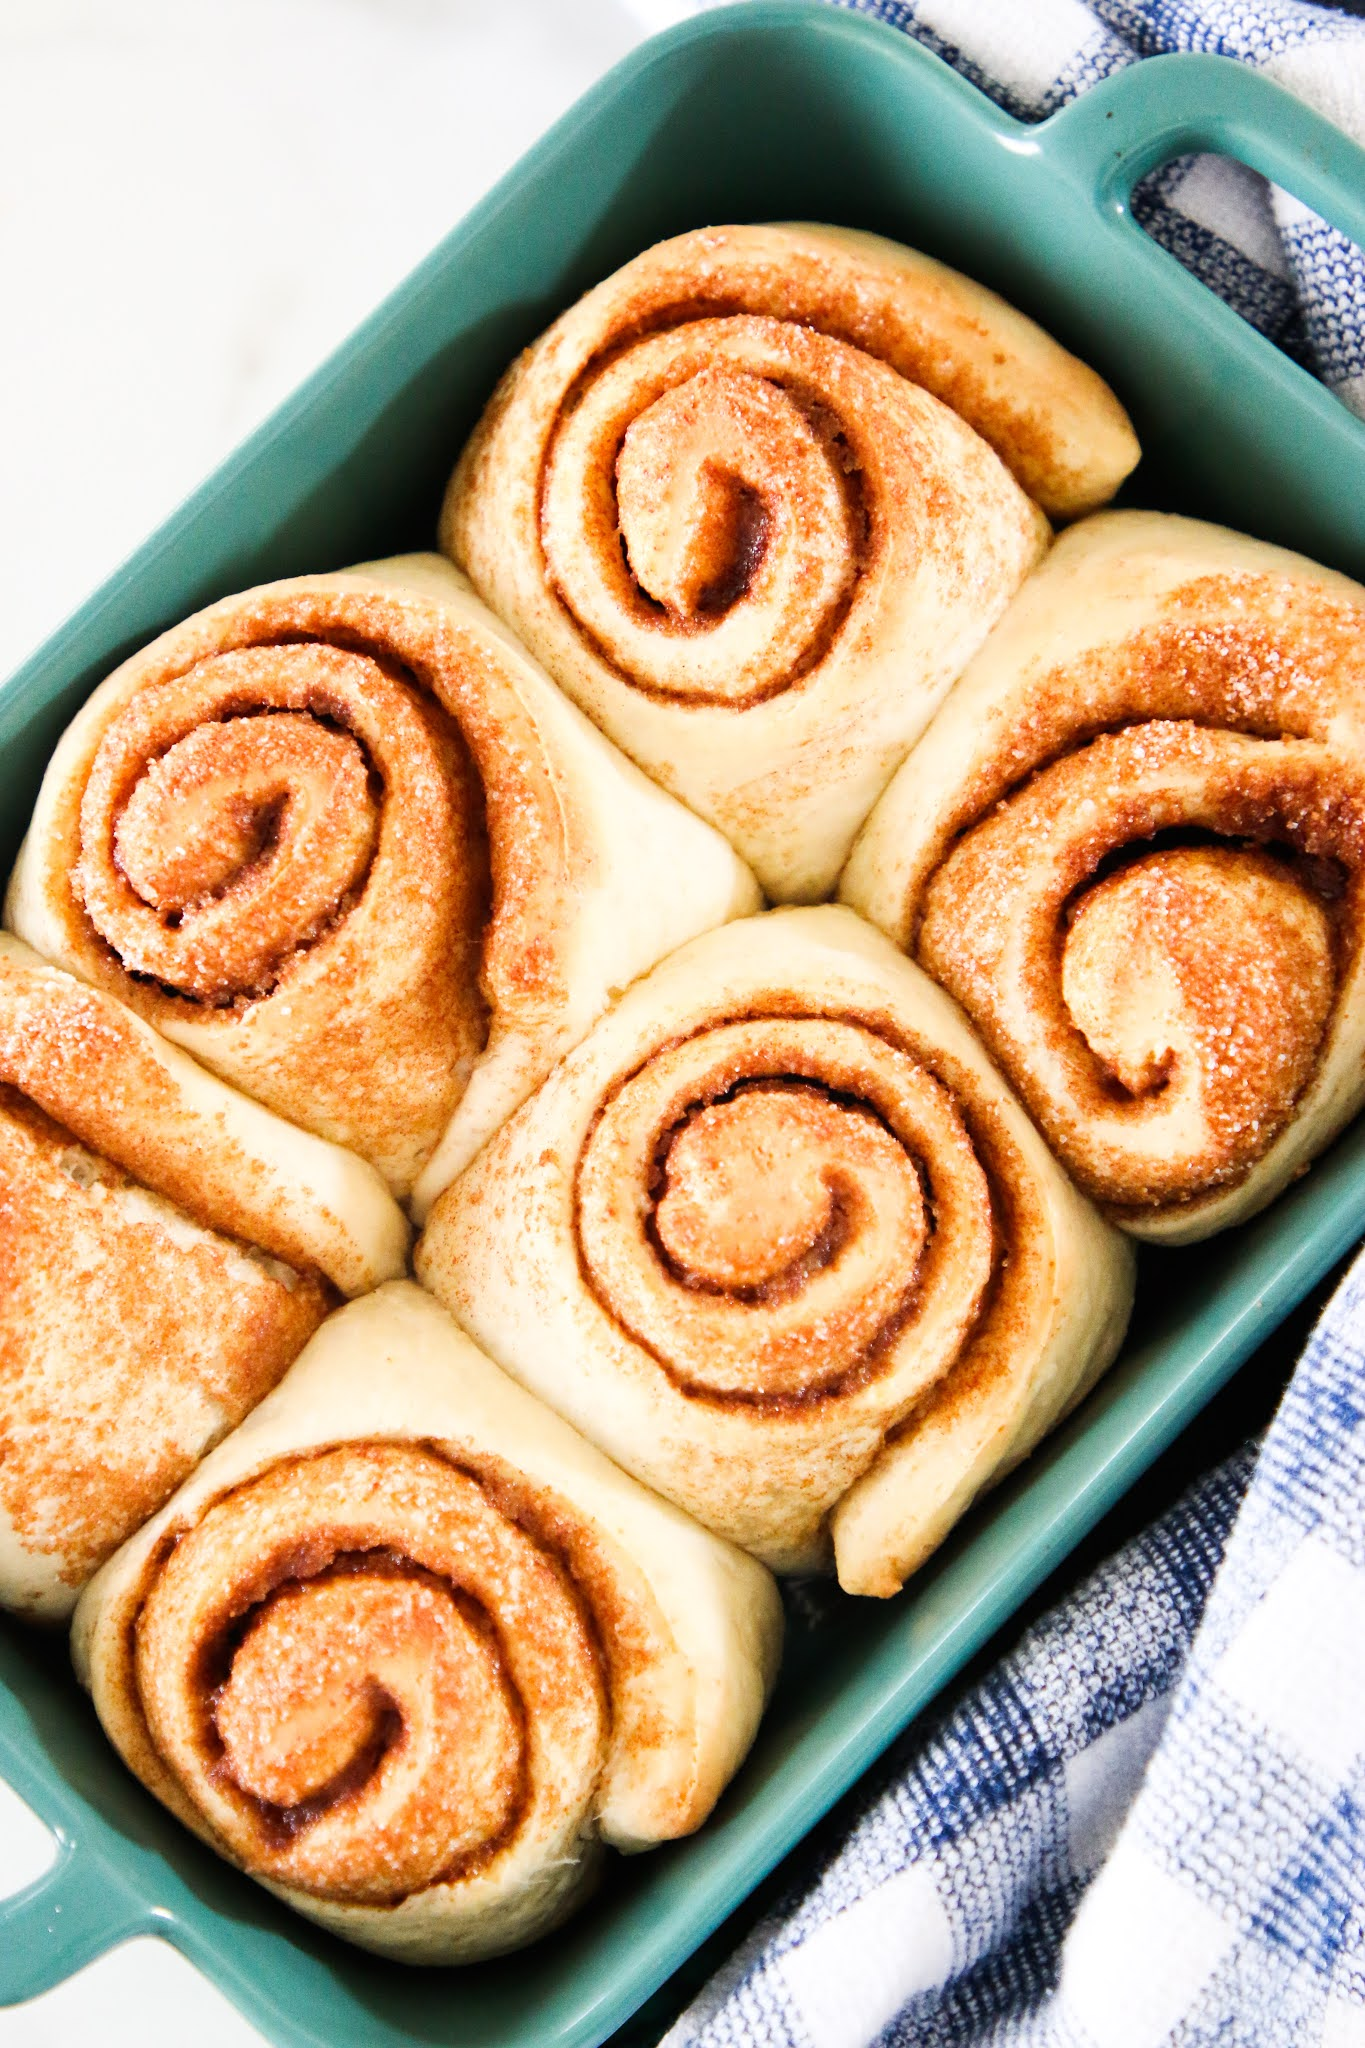 Six cinnamon rolls in a green baking dish with a blue dish towel in the background.